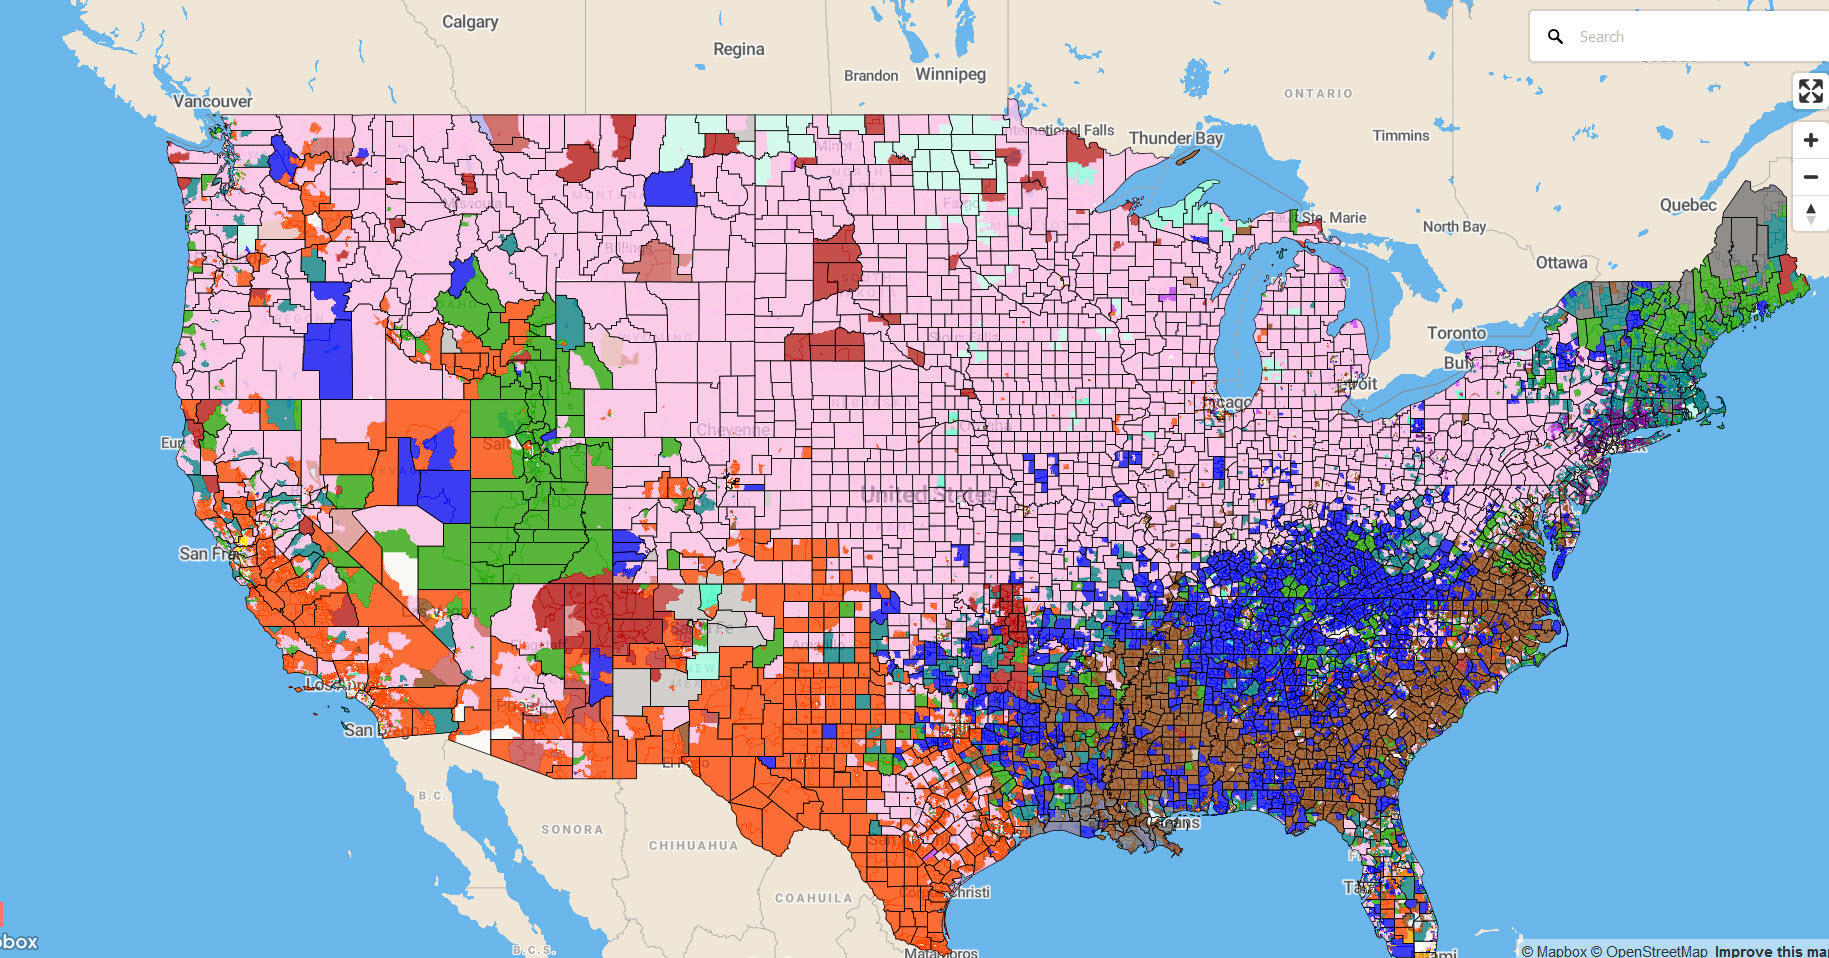 Interactive map of the Top Ancestry or Racial or Hispanic Subgroup with AA Estimate by Census Tract.